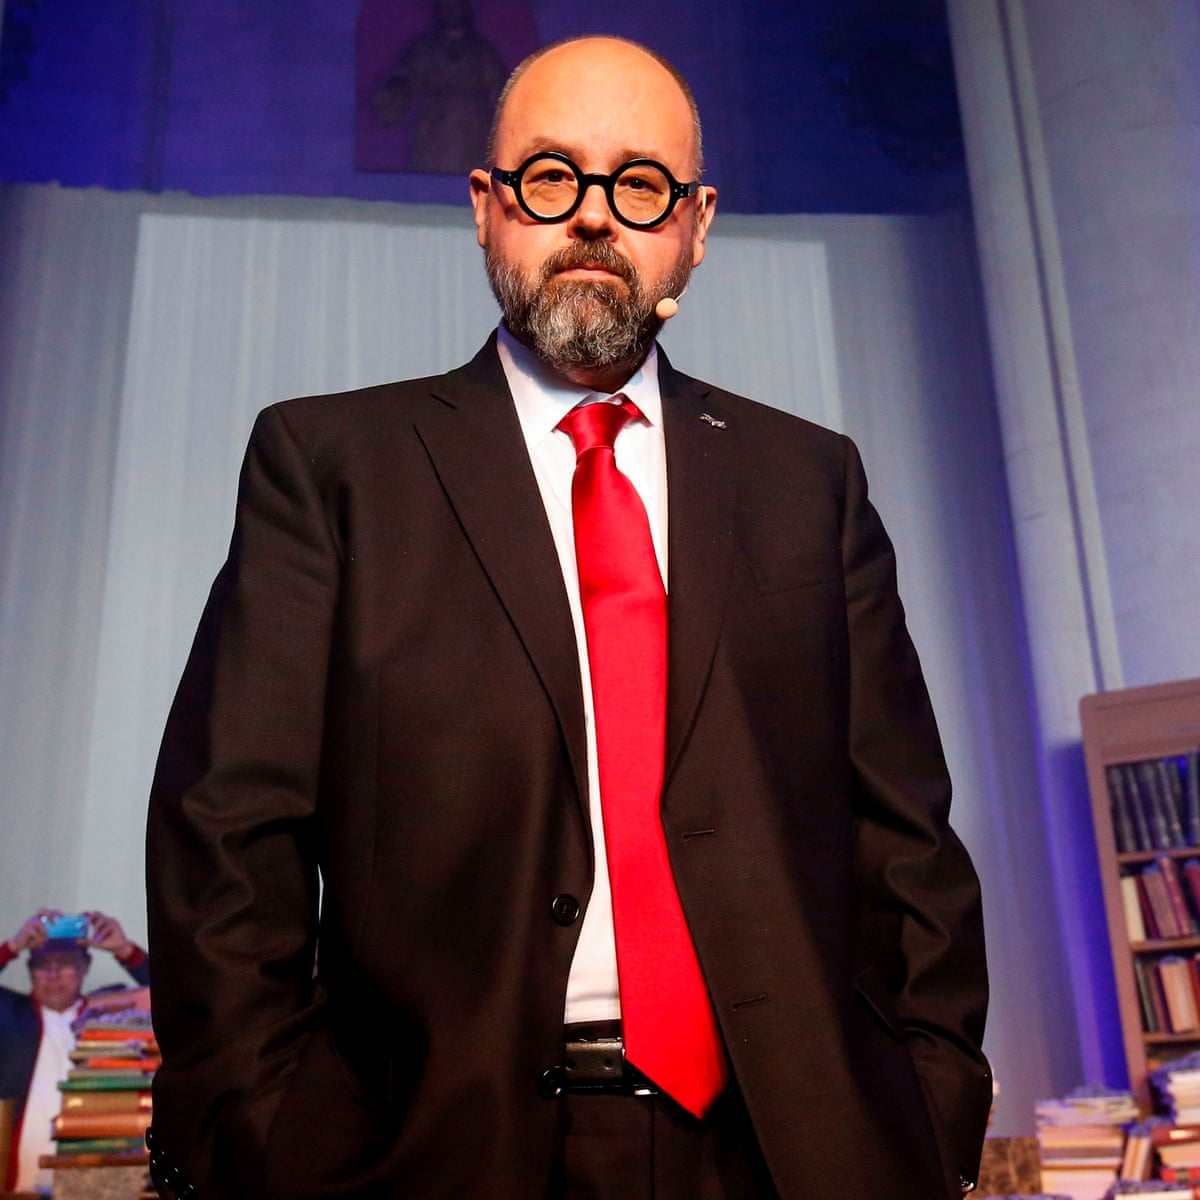 Carlos Ruiz Zafón, author of The Shadow of the Wind, dies aged 55 ...